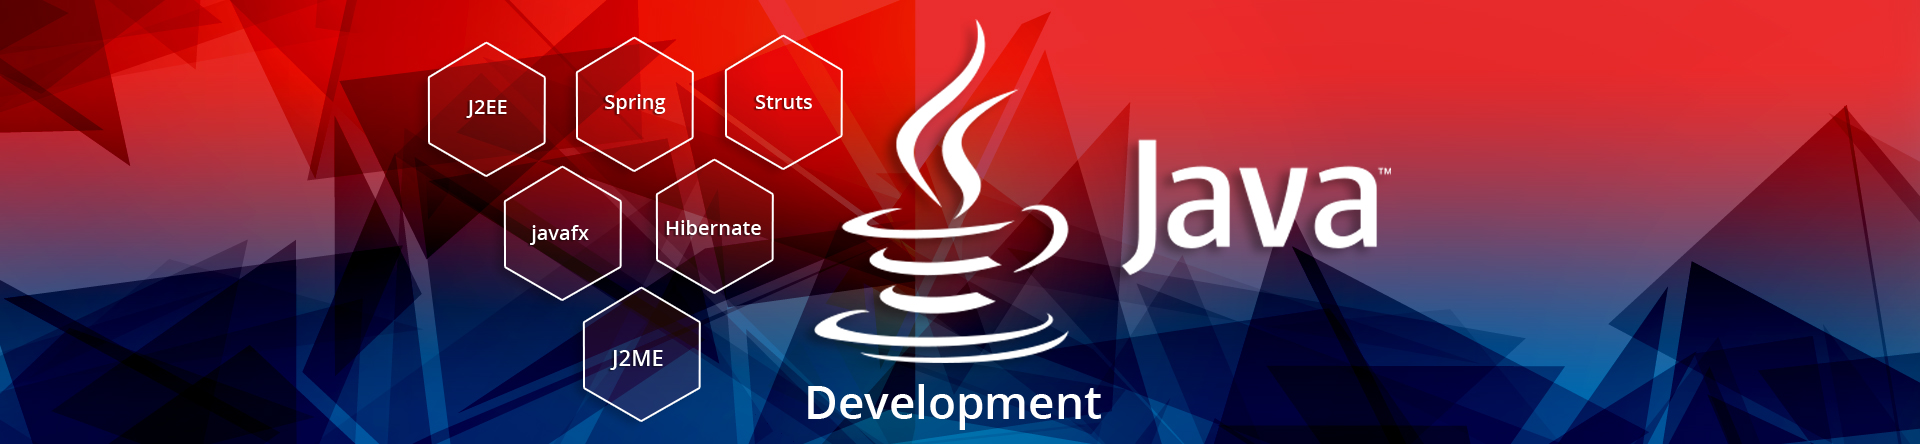 core java in muktsar